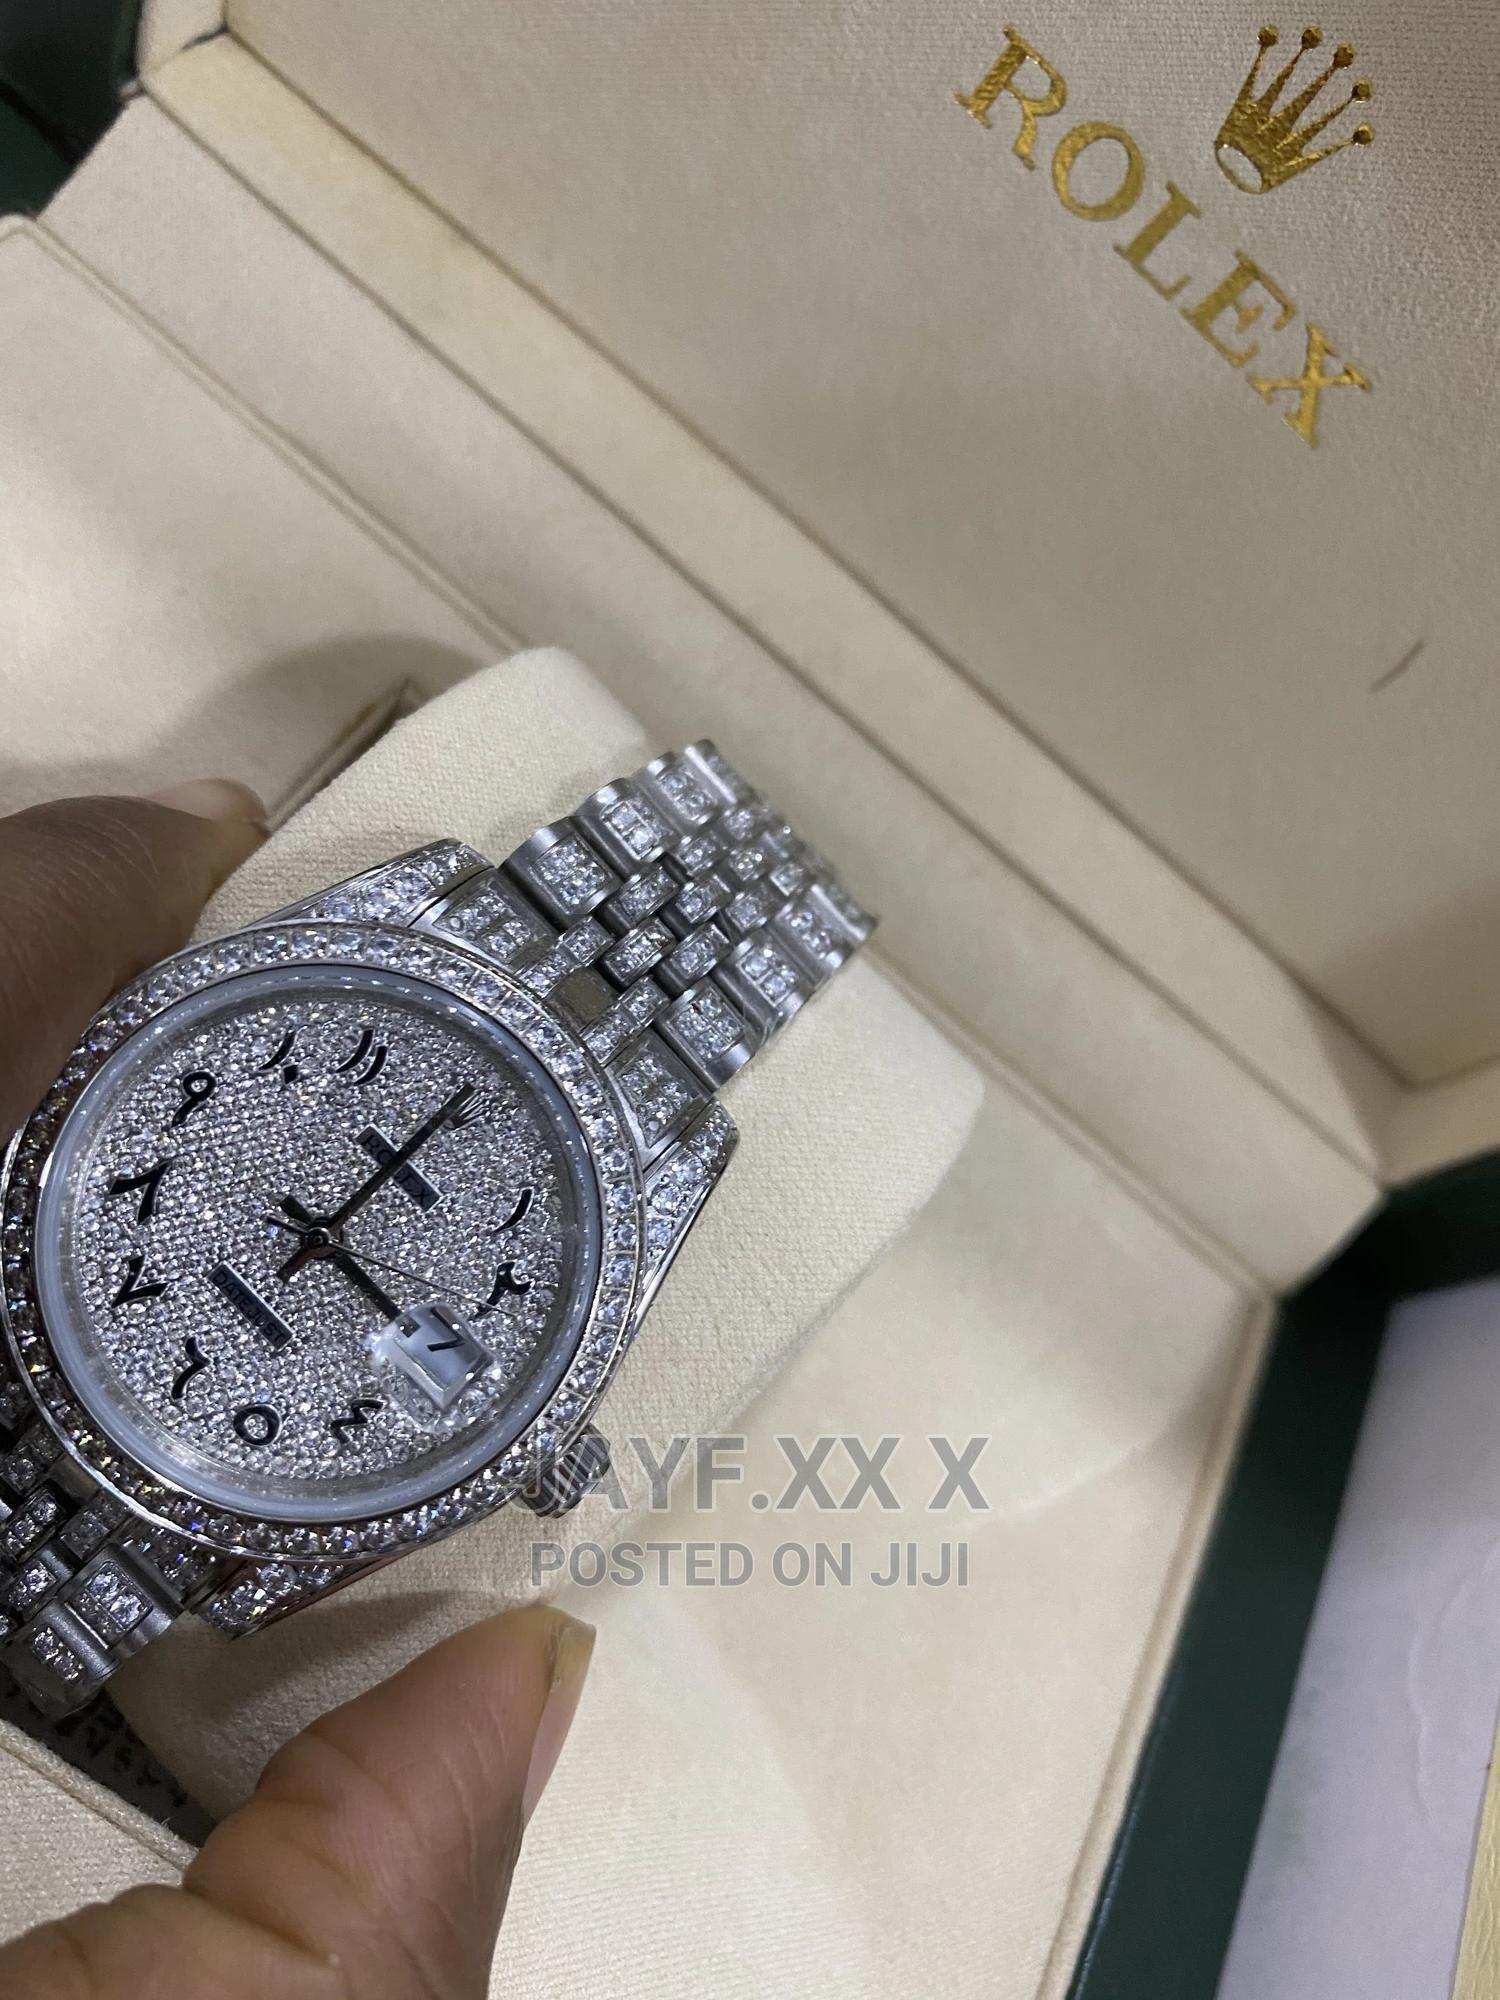 Rolex Iced Out Arabic Dial Luxury (Giveaway Price)   Watches for sale in Alimosho, Lagos State, Nigeria